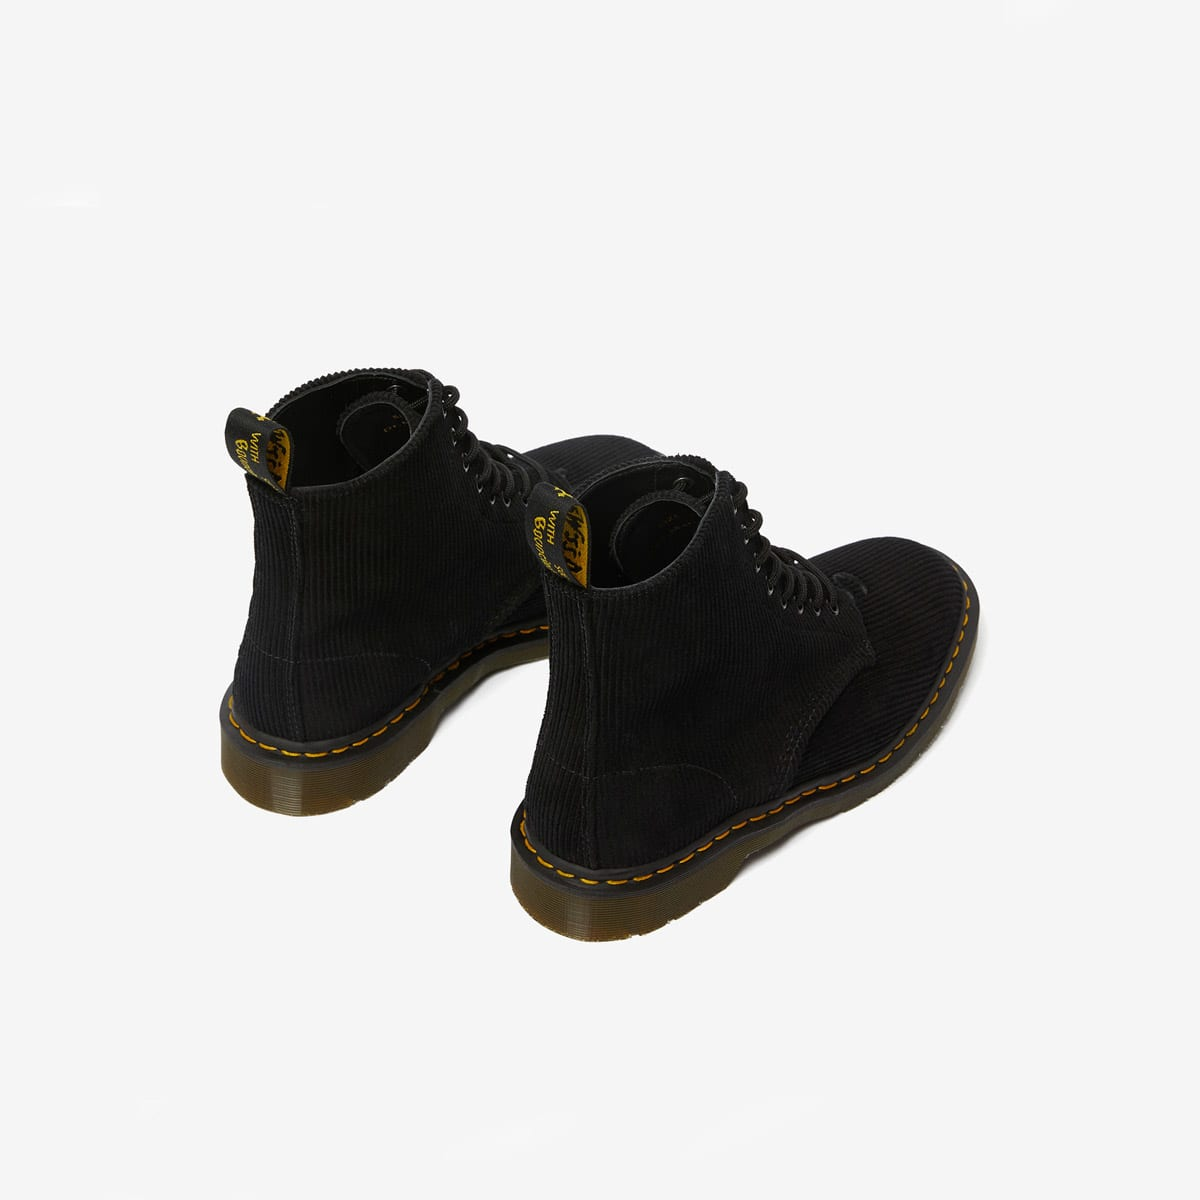 Dr. Martens x Undercover 1460 Boot - 25924001